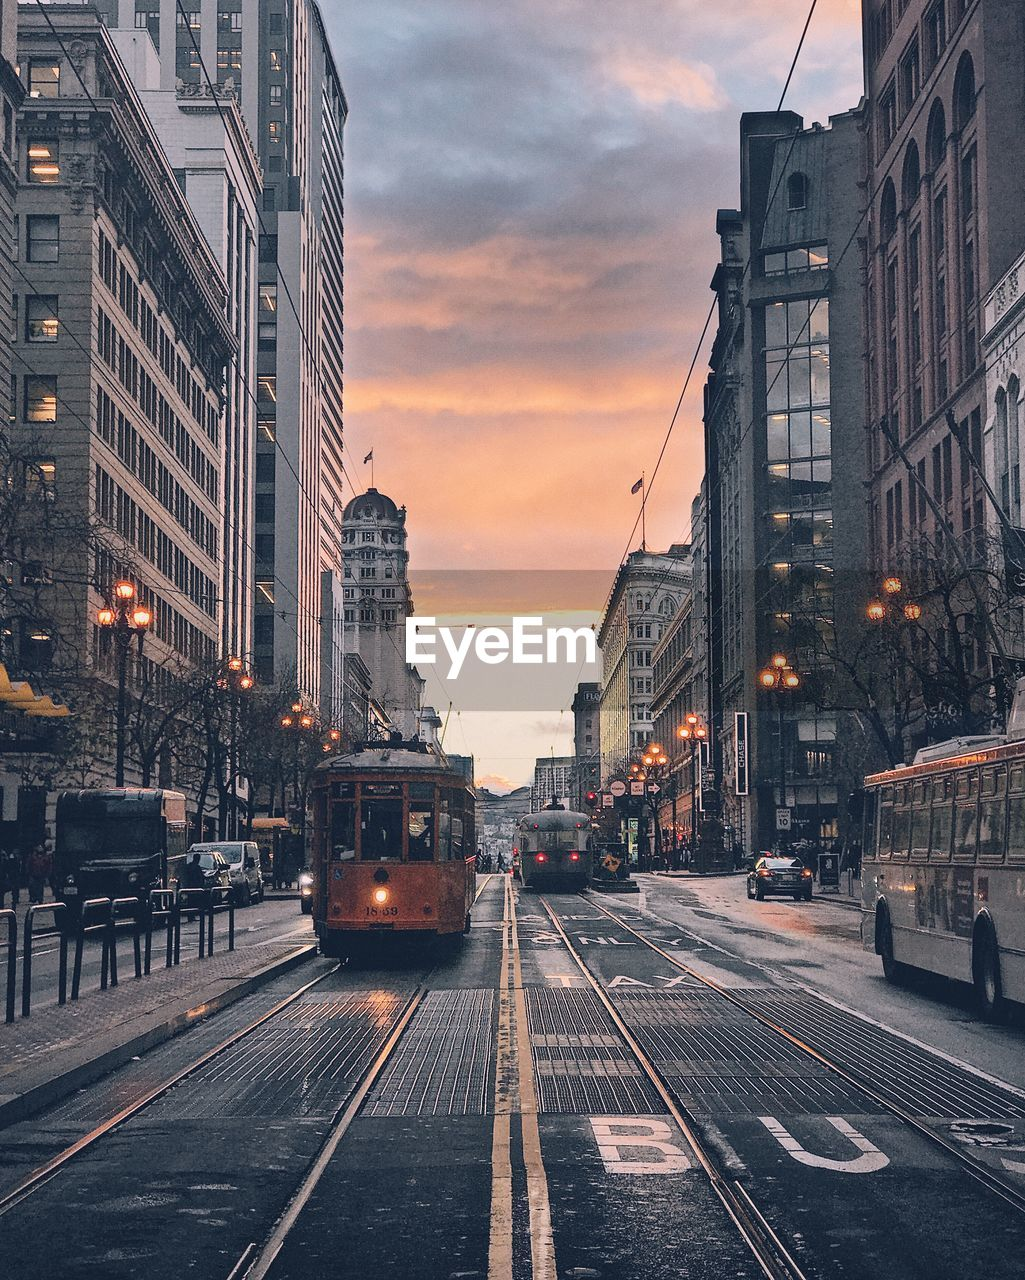 Tramway On Street Against Cloudy Sky During Sunset